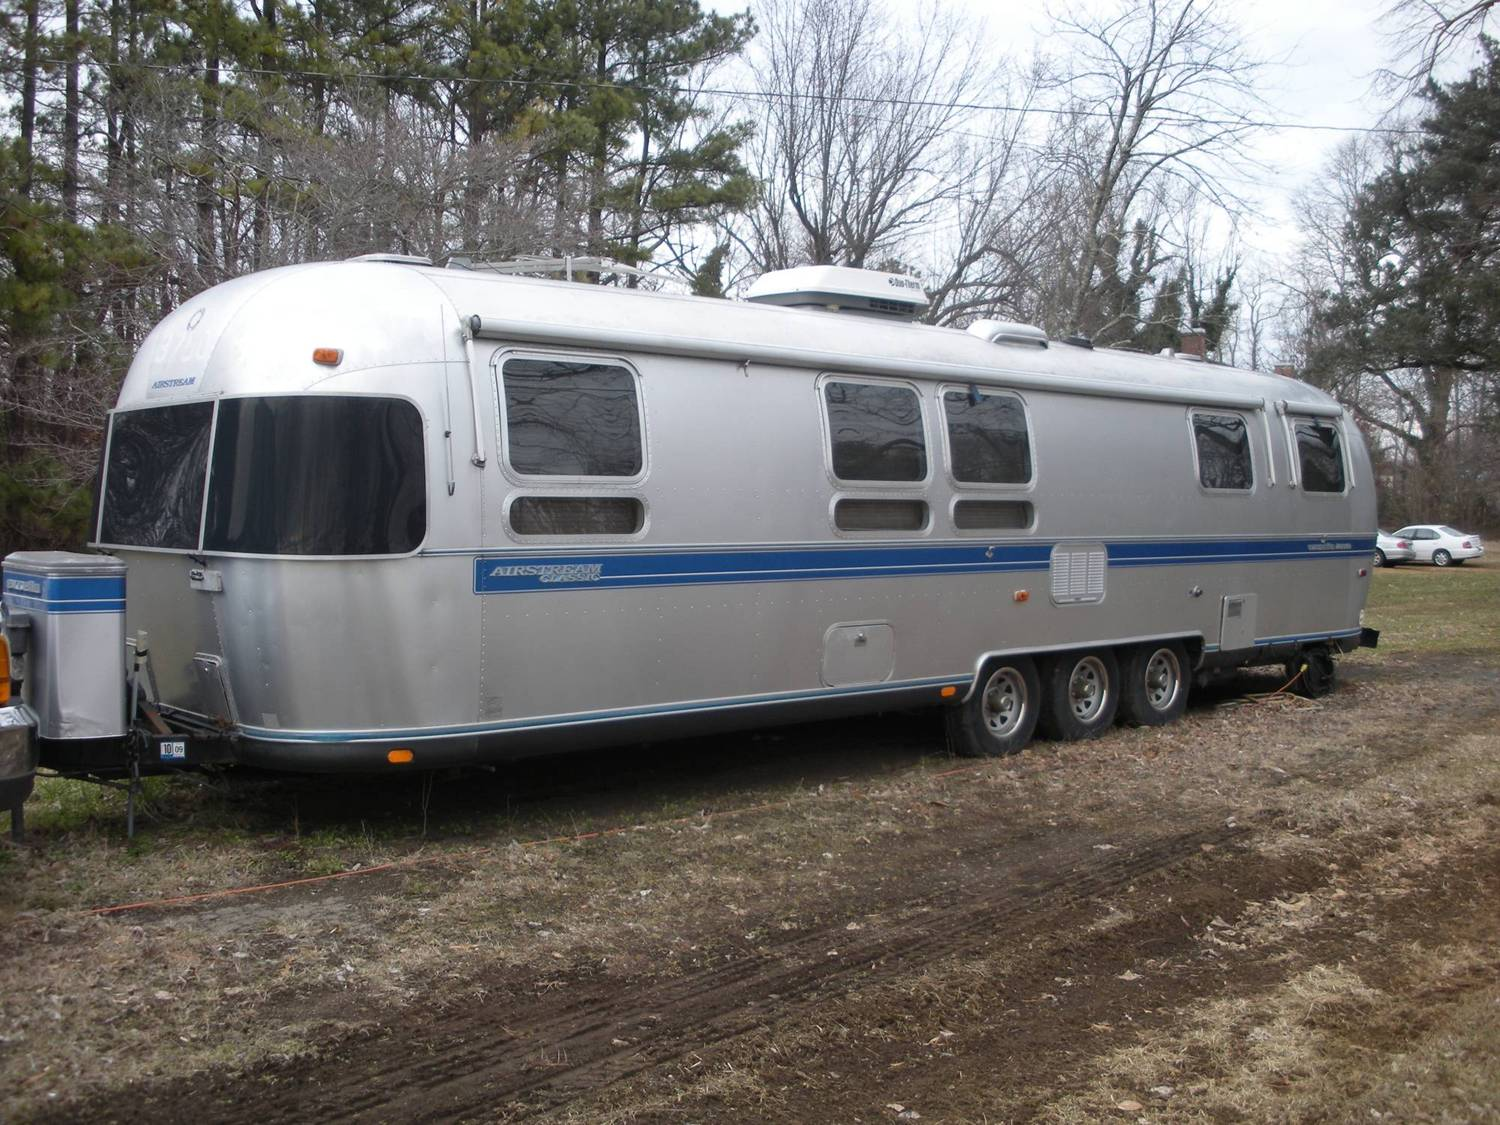 34 foot Airstream, old, new, ? Why? - Airstream Forums